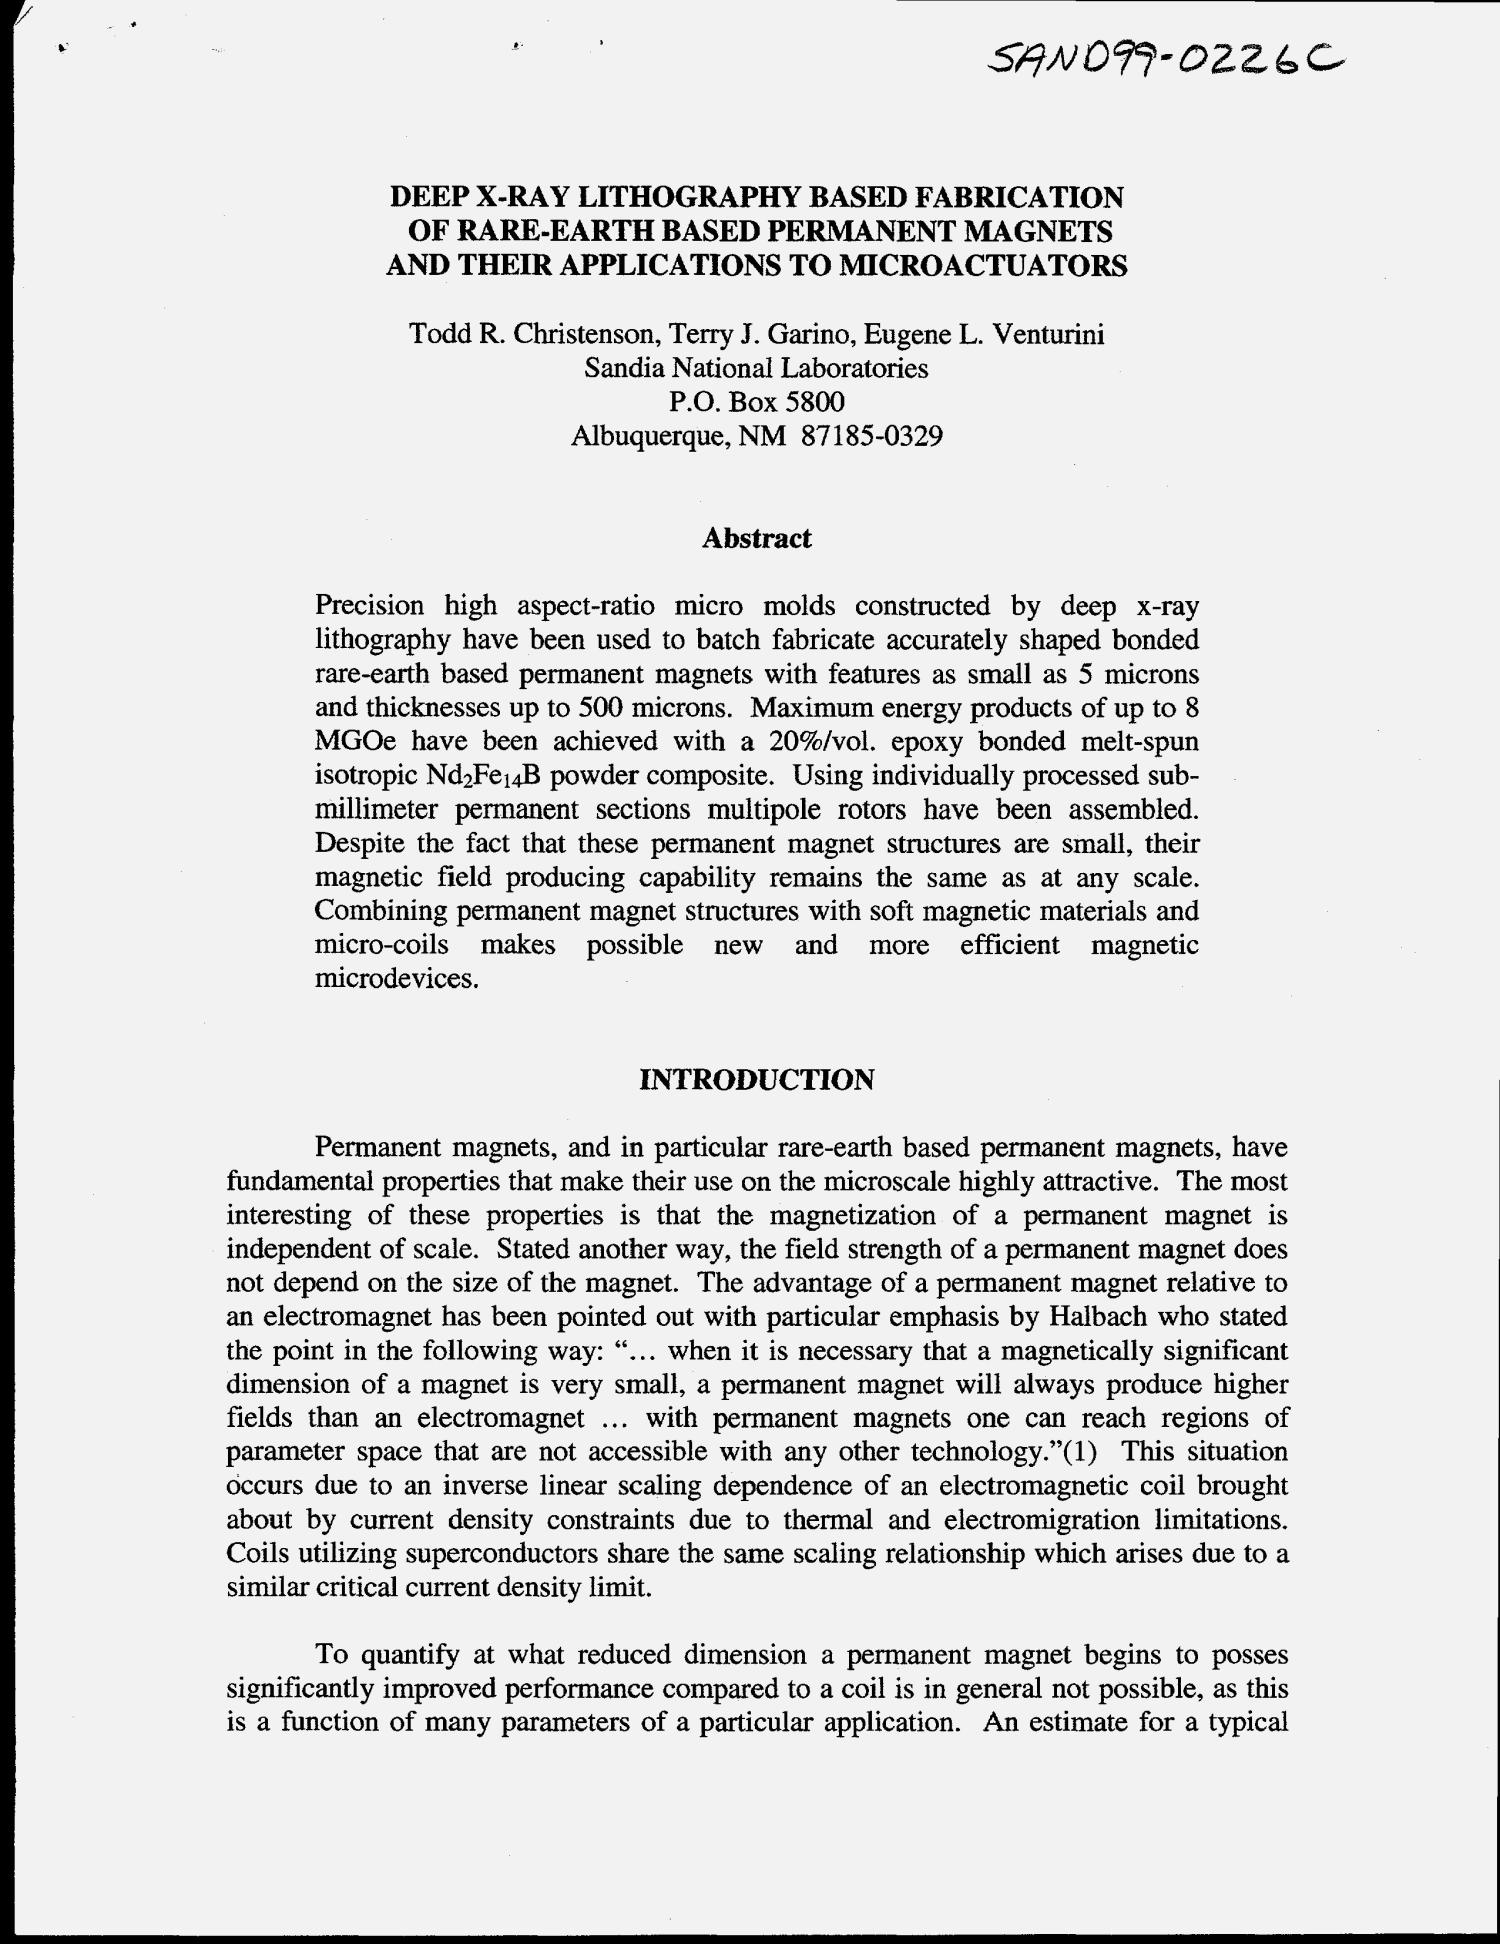 Deep X Ray Lithography Based Fabrication Of Rare Earth Permanent Magnets And Their Applications To Microactuators Digital Library